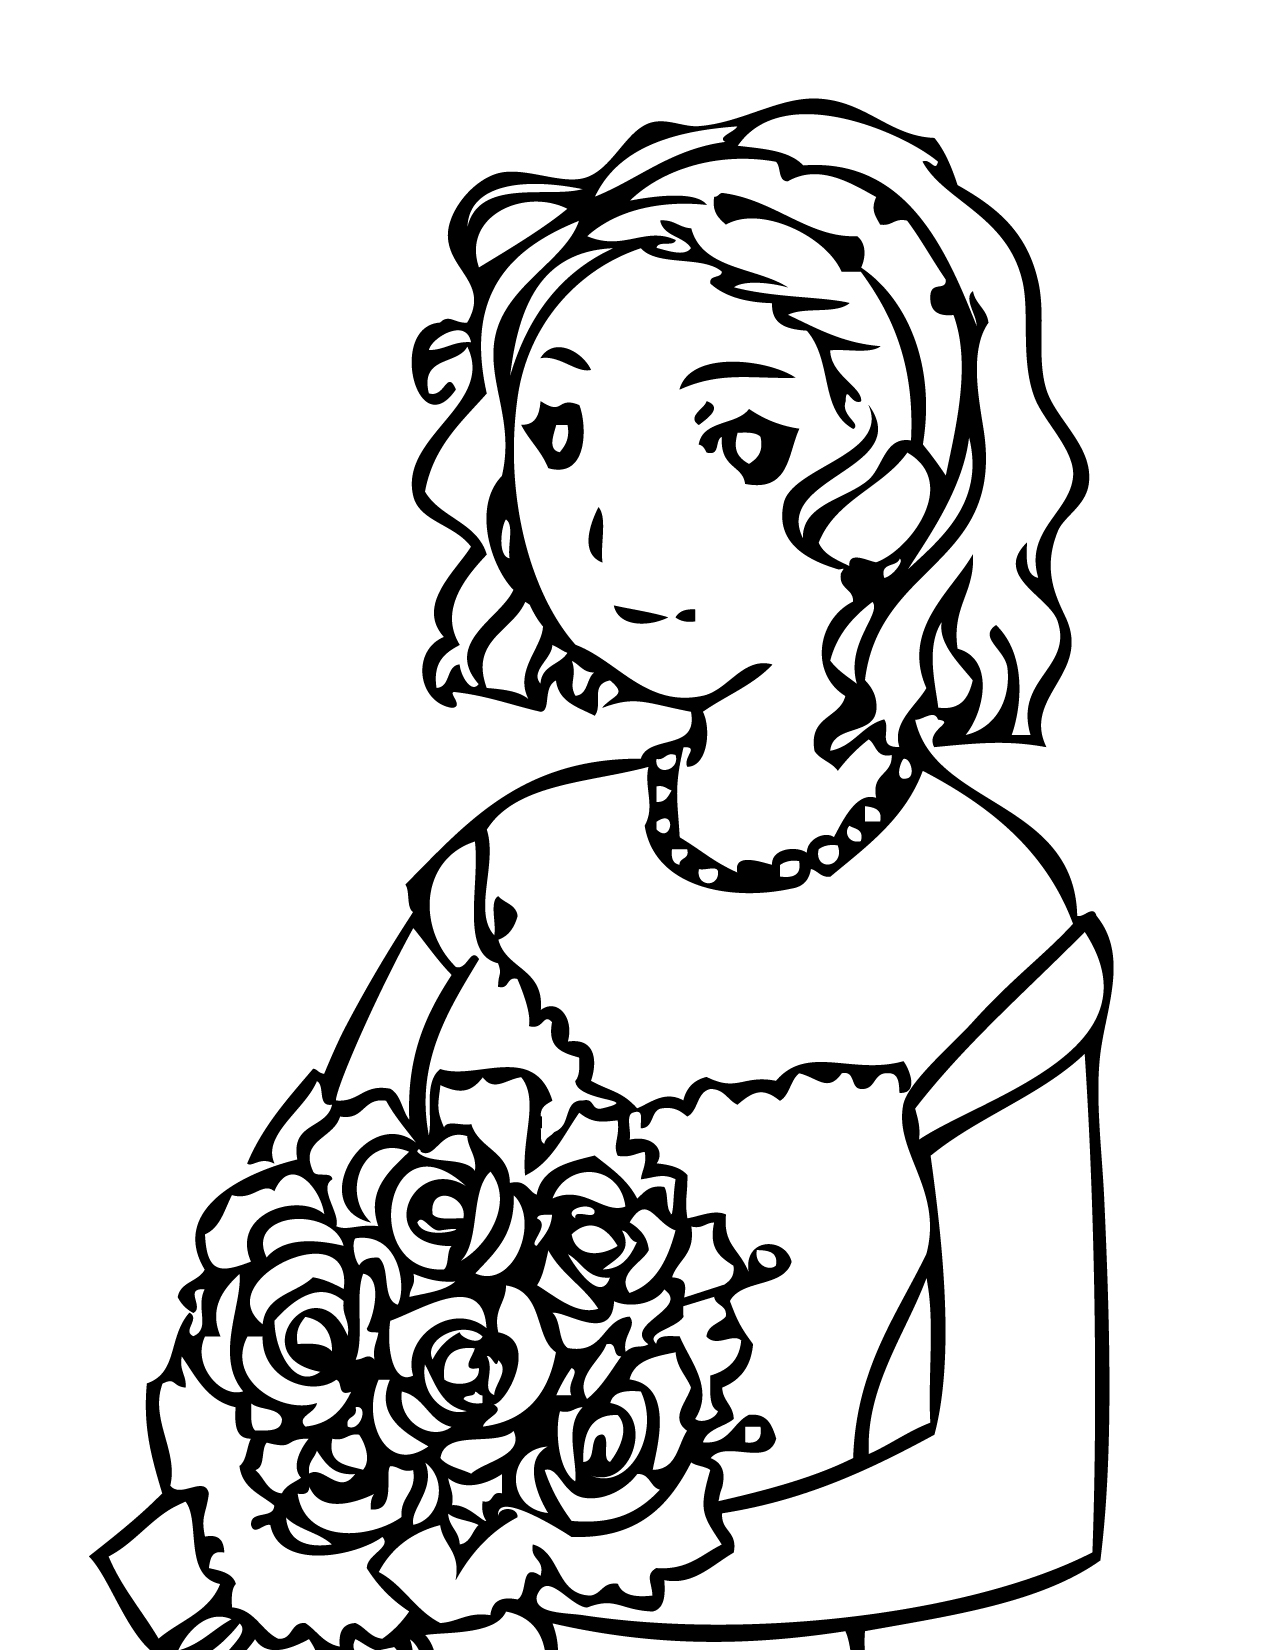 Maid coloring #1, Download drawings